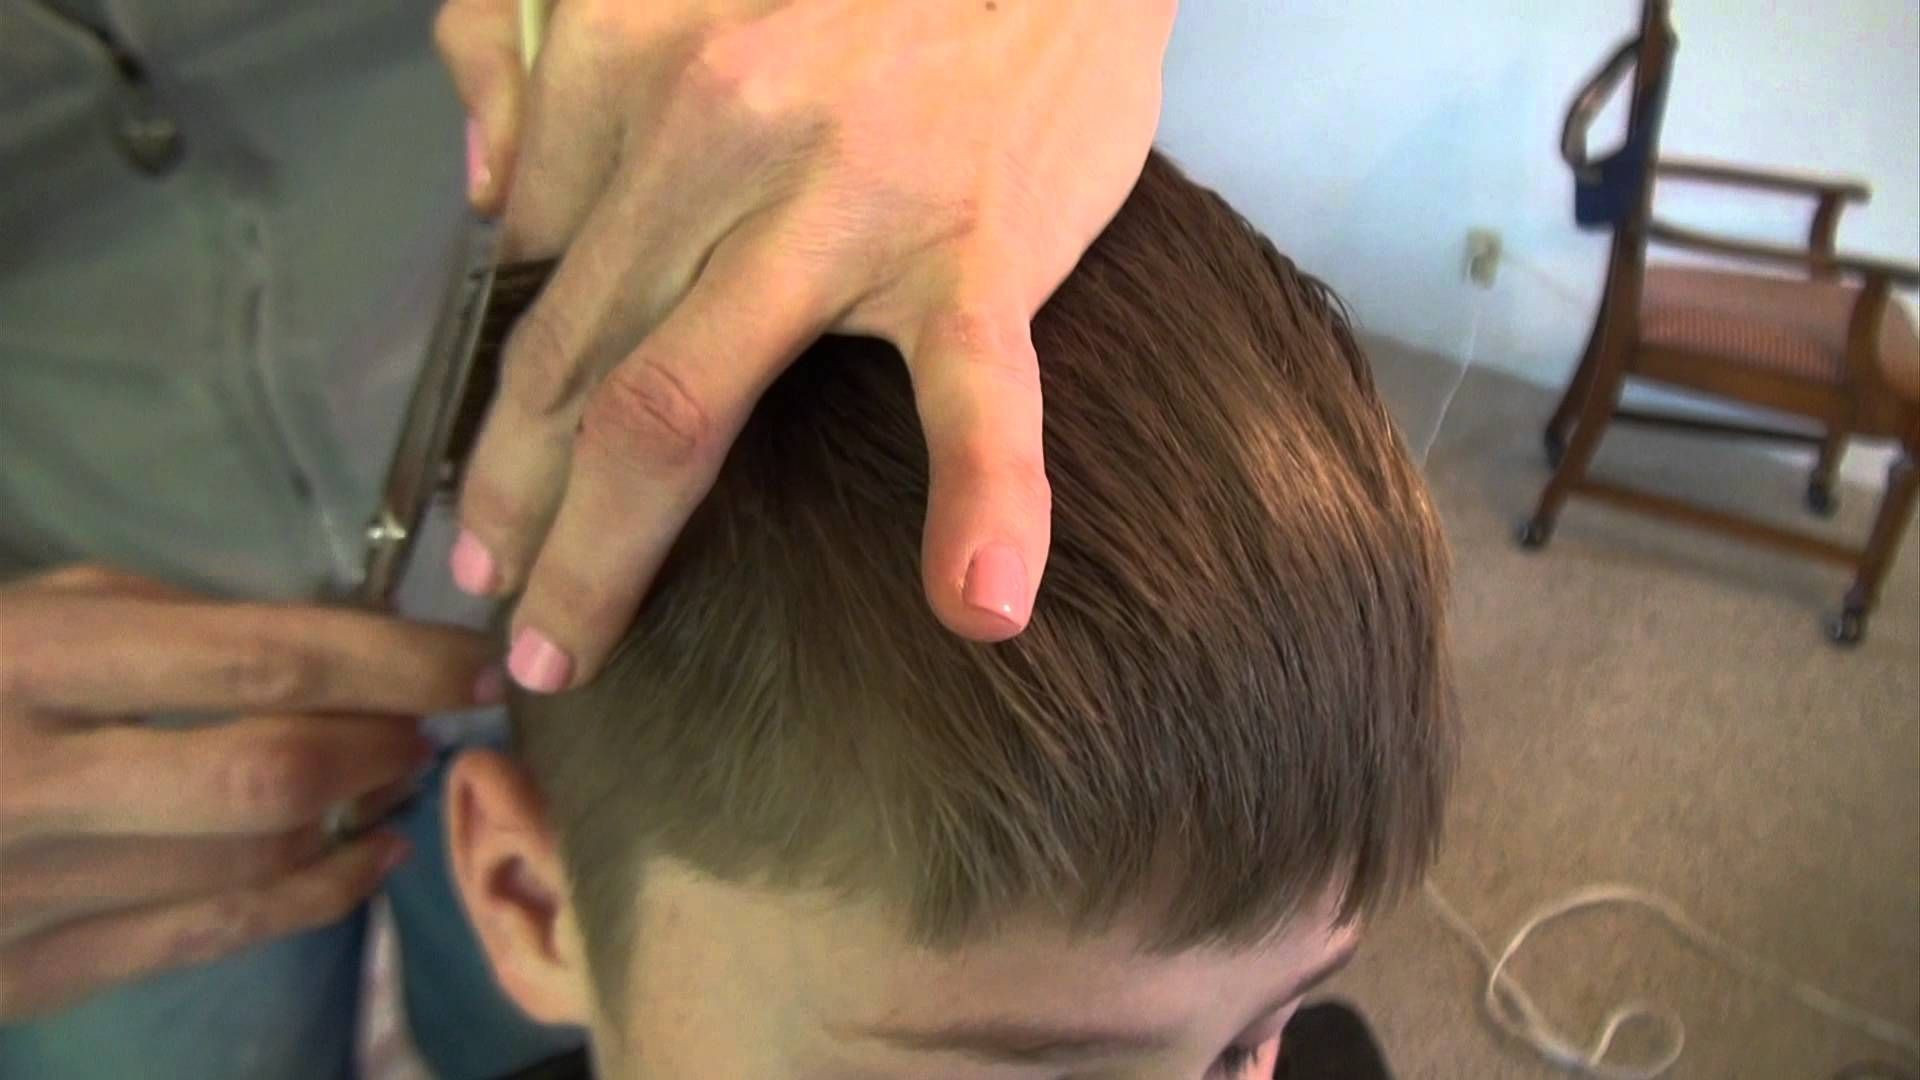 Best ideas about How To Cut Boys Hair With Scissors . Save or Pin Best How To Cut Boys Hair Cutting Kids With Clippers And Now.